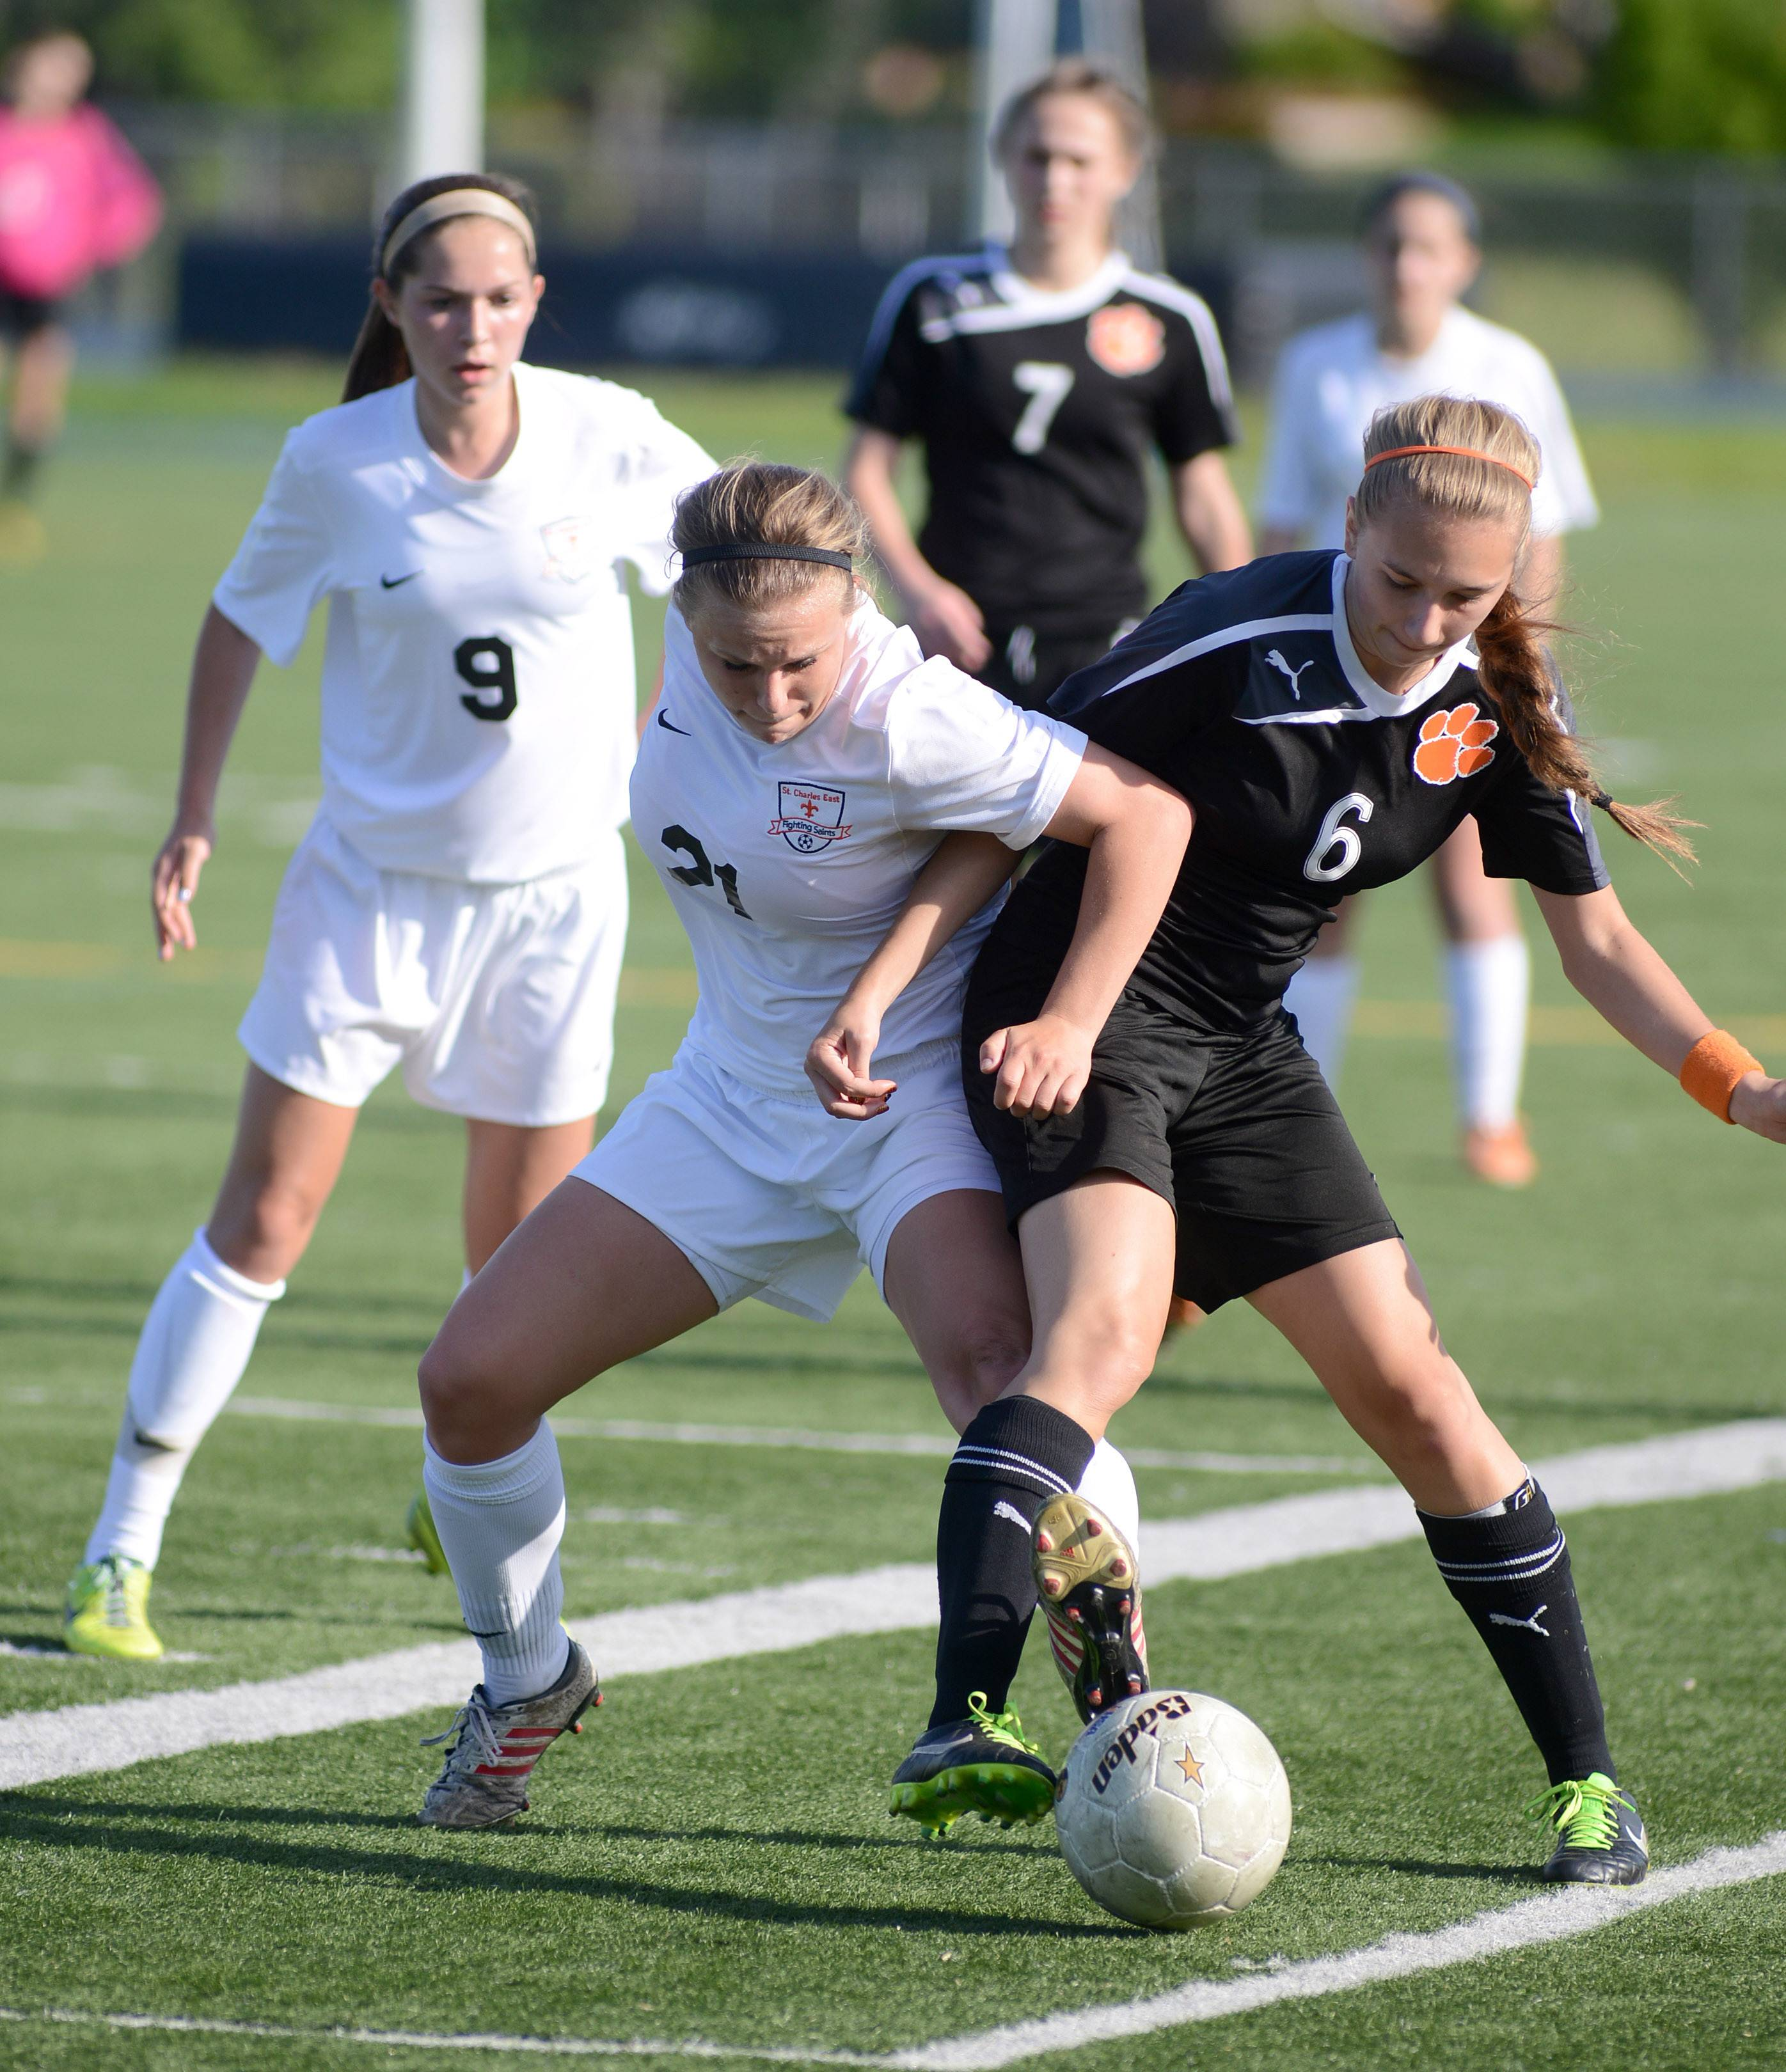 St. Charles East's Amanda Hilton, left, and Wheaton Warrenville South's Marina Tolczyk battle for the ball near the boundary line in the first half of the regional title game at West Chicago High School on Friday, May 23.